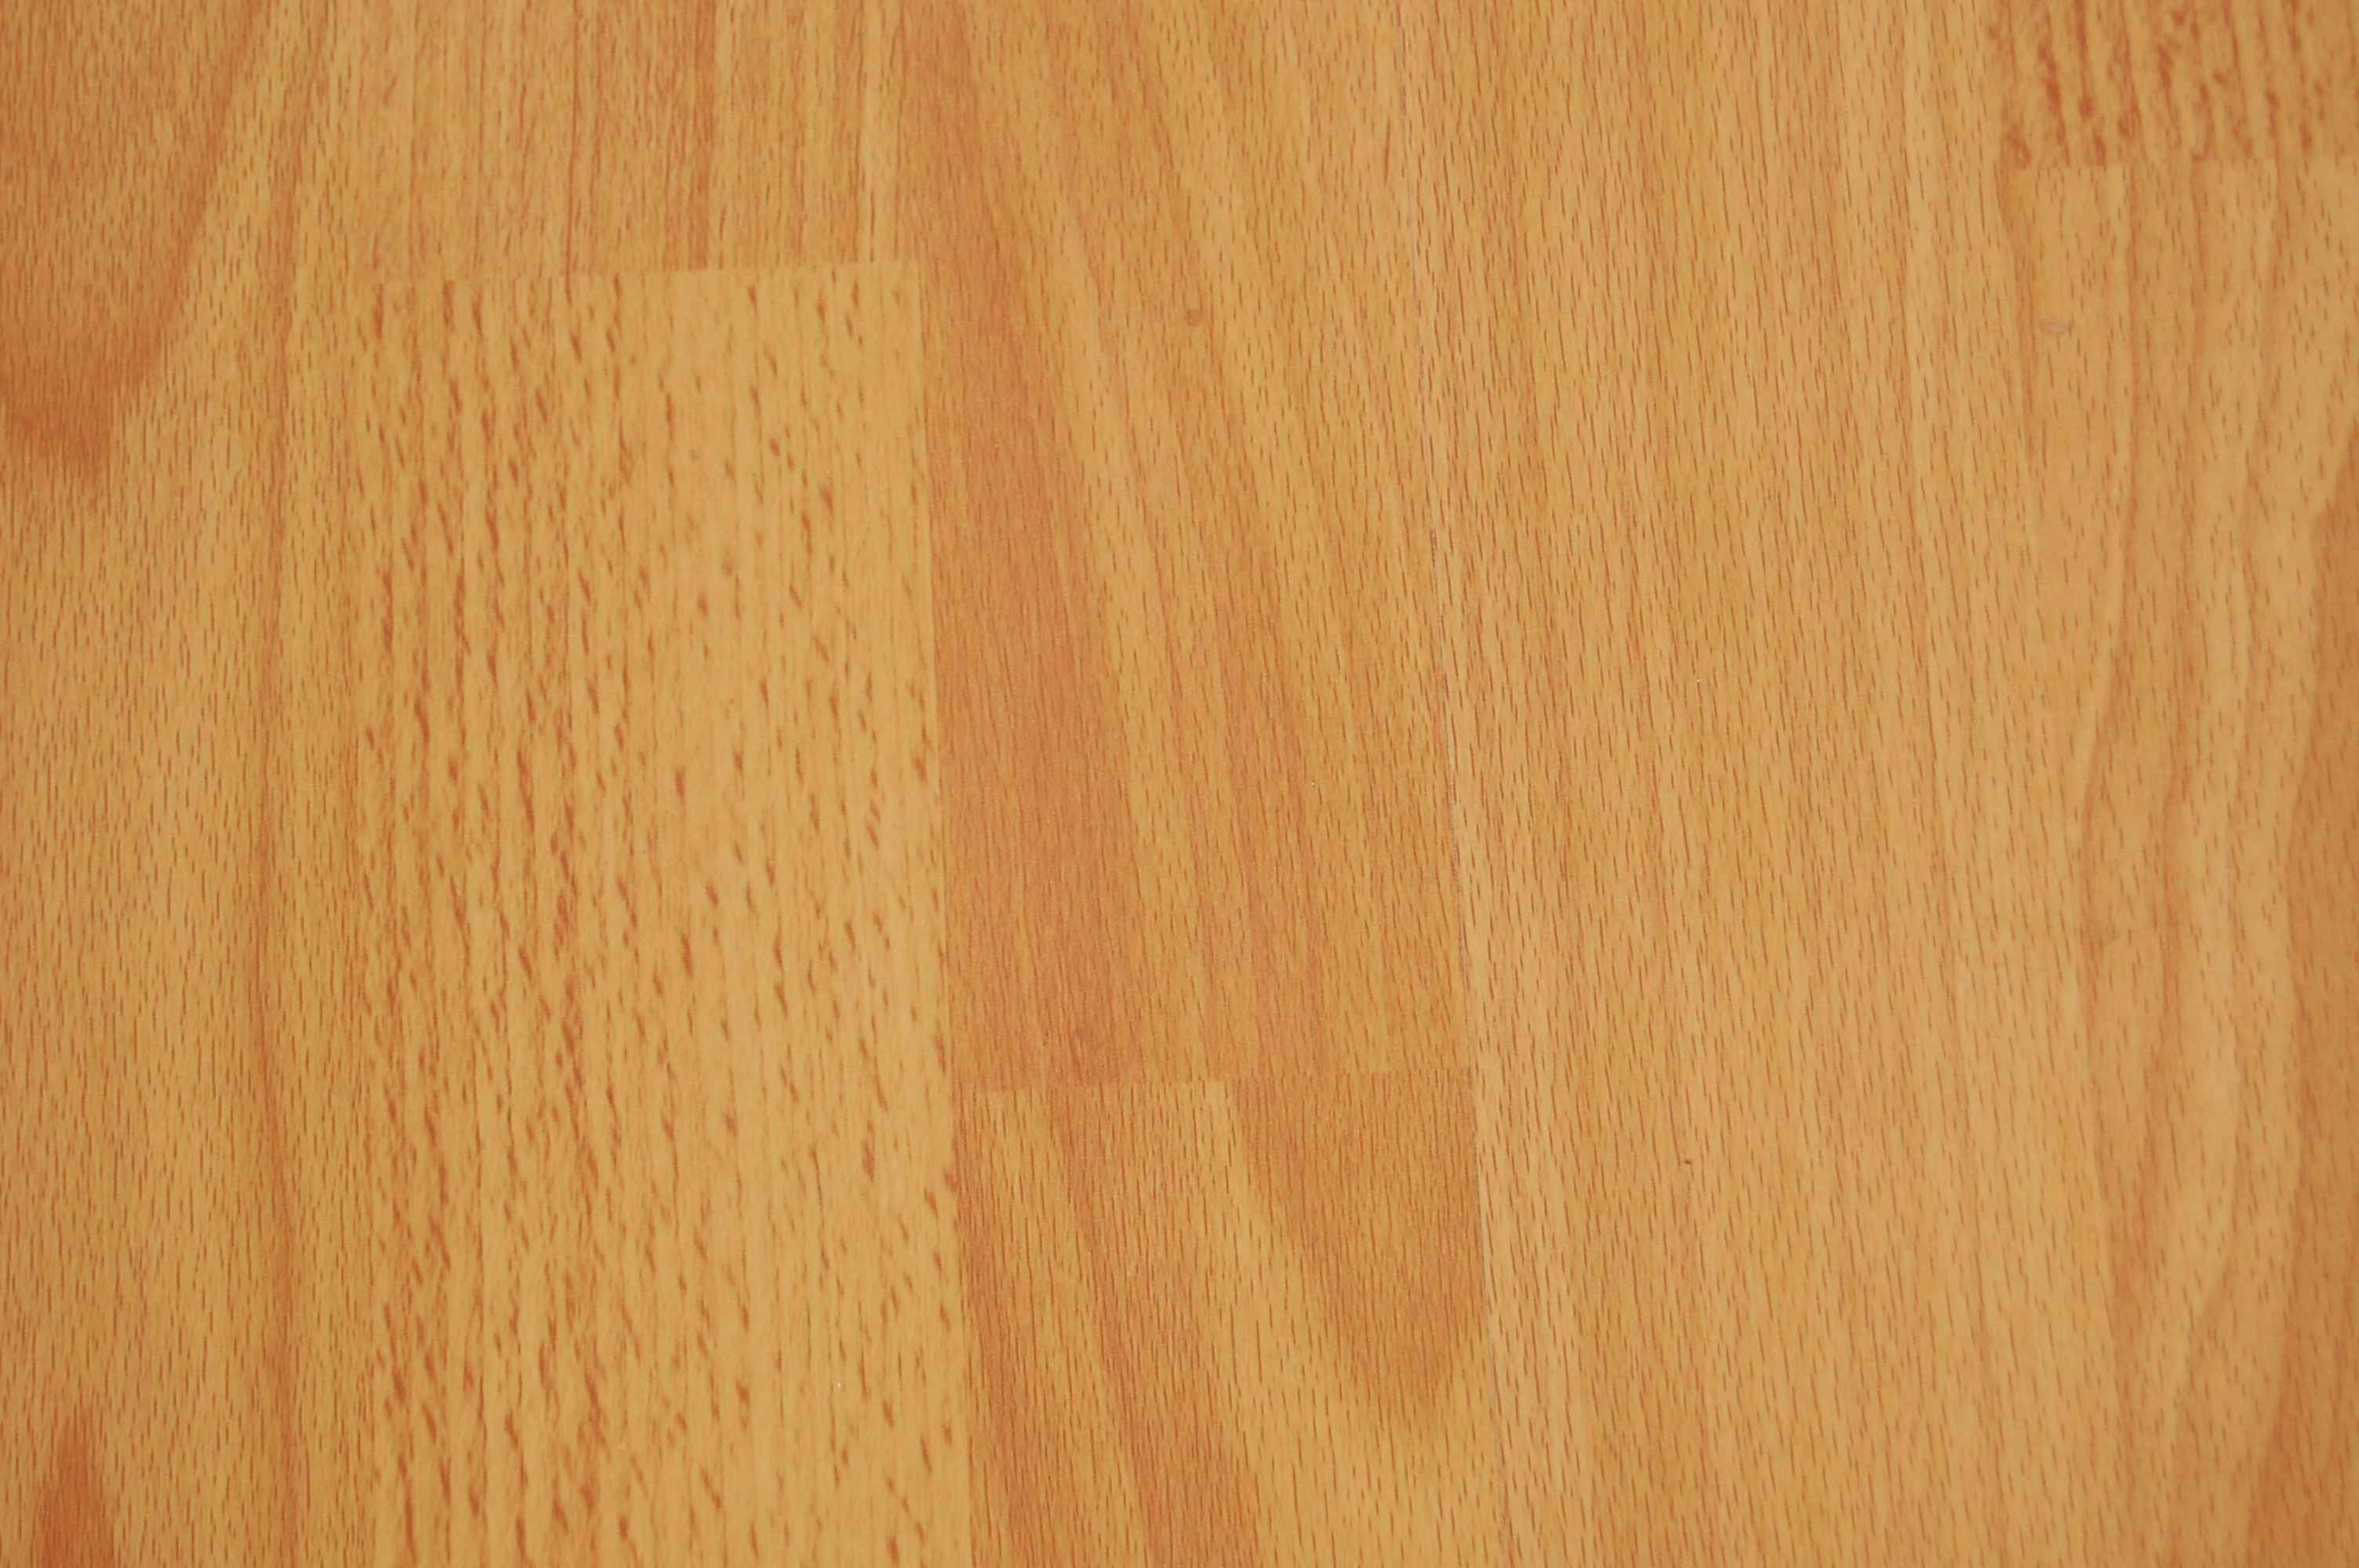 Laminate flooring wood and laminate flooring for Laminate flooring to carpet